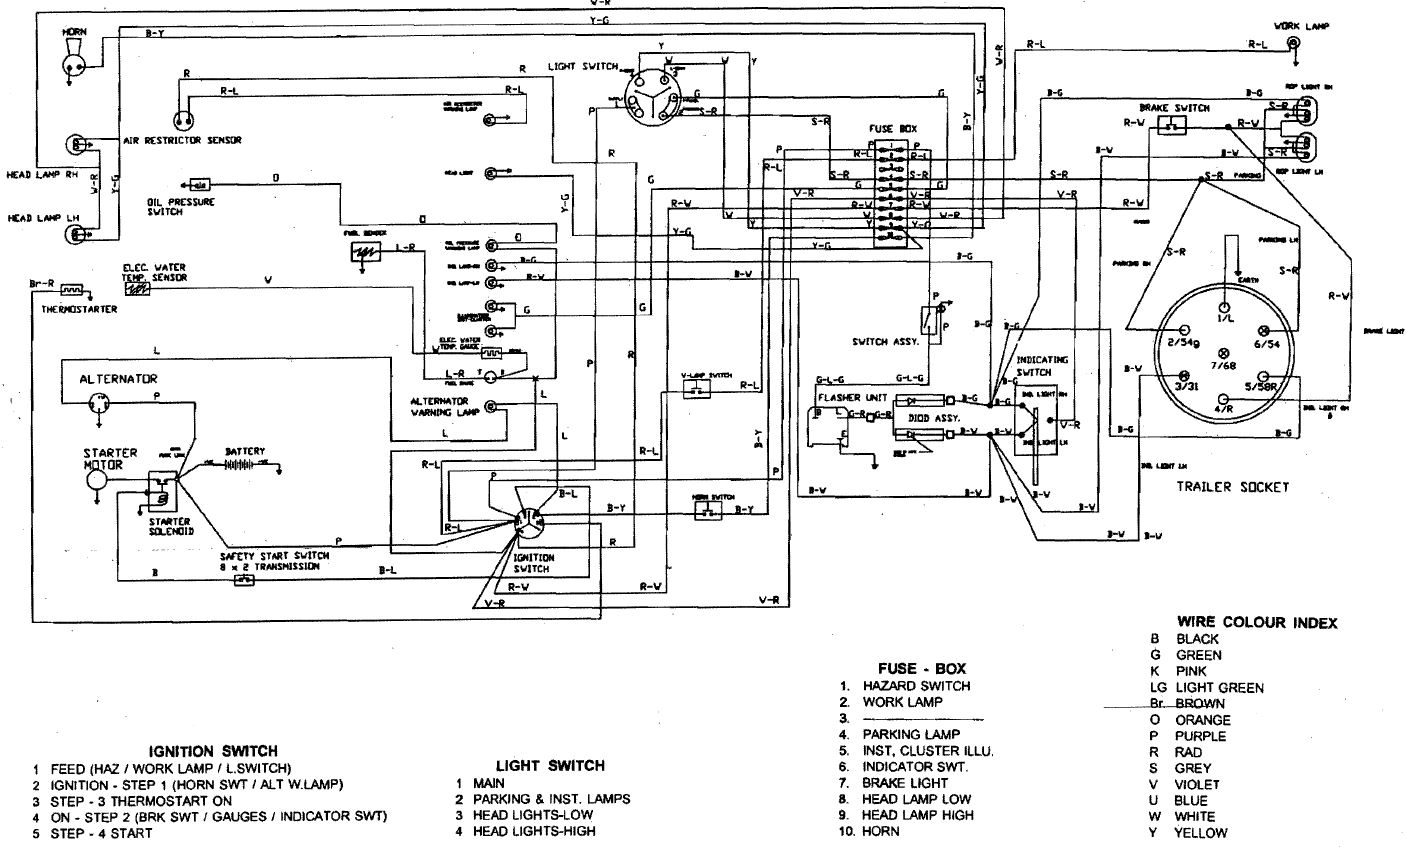 hitachi distributor wiring diagram wiring libraryzetor tractor wiring  diagram database wiring diagram yardman tractor wiring diagram